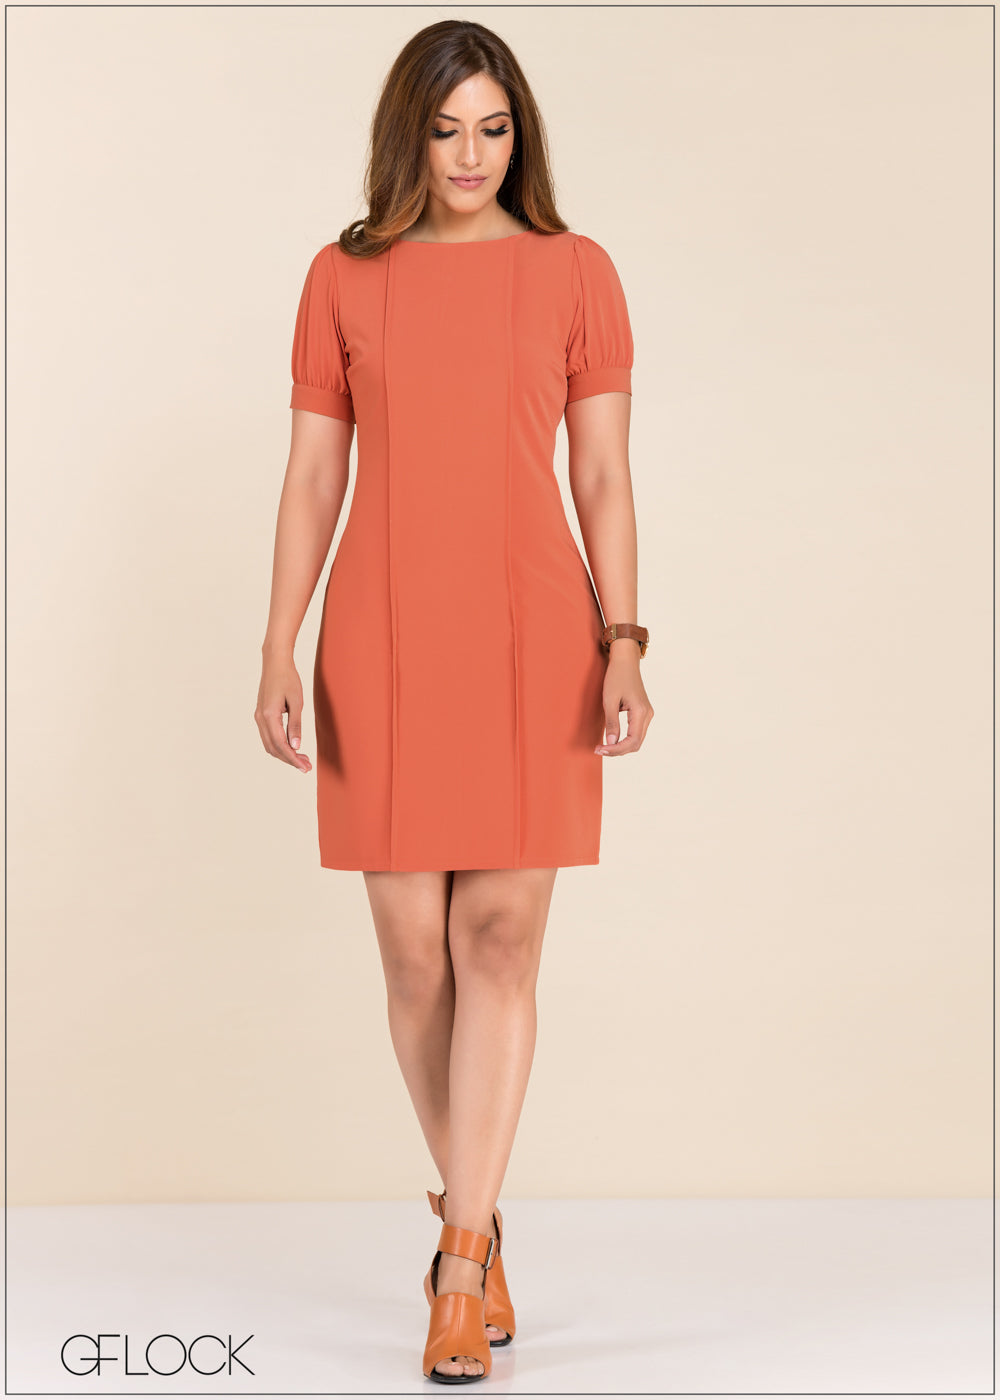 Puff Sleeve Sheath Dress - GFLOCK.LK